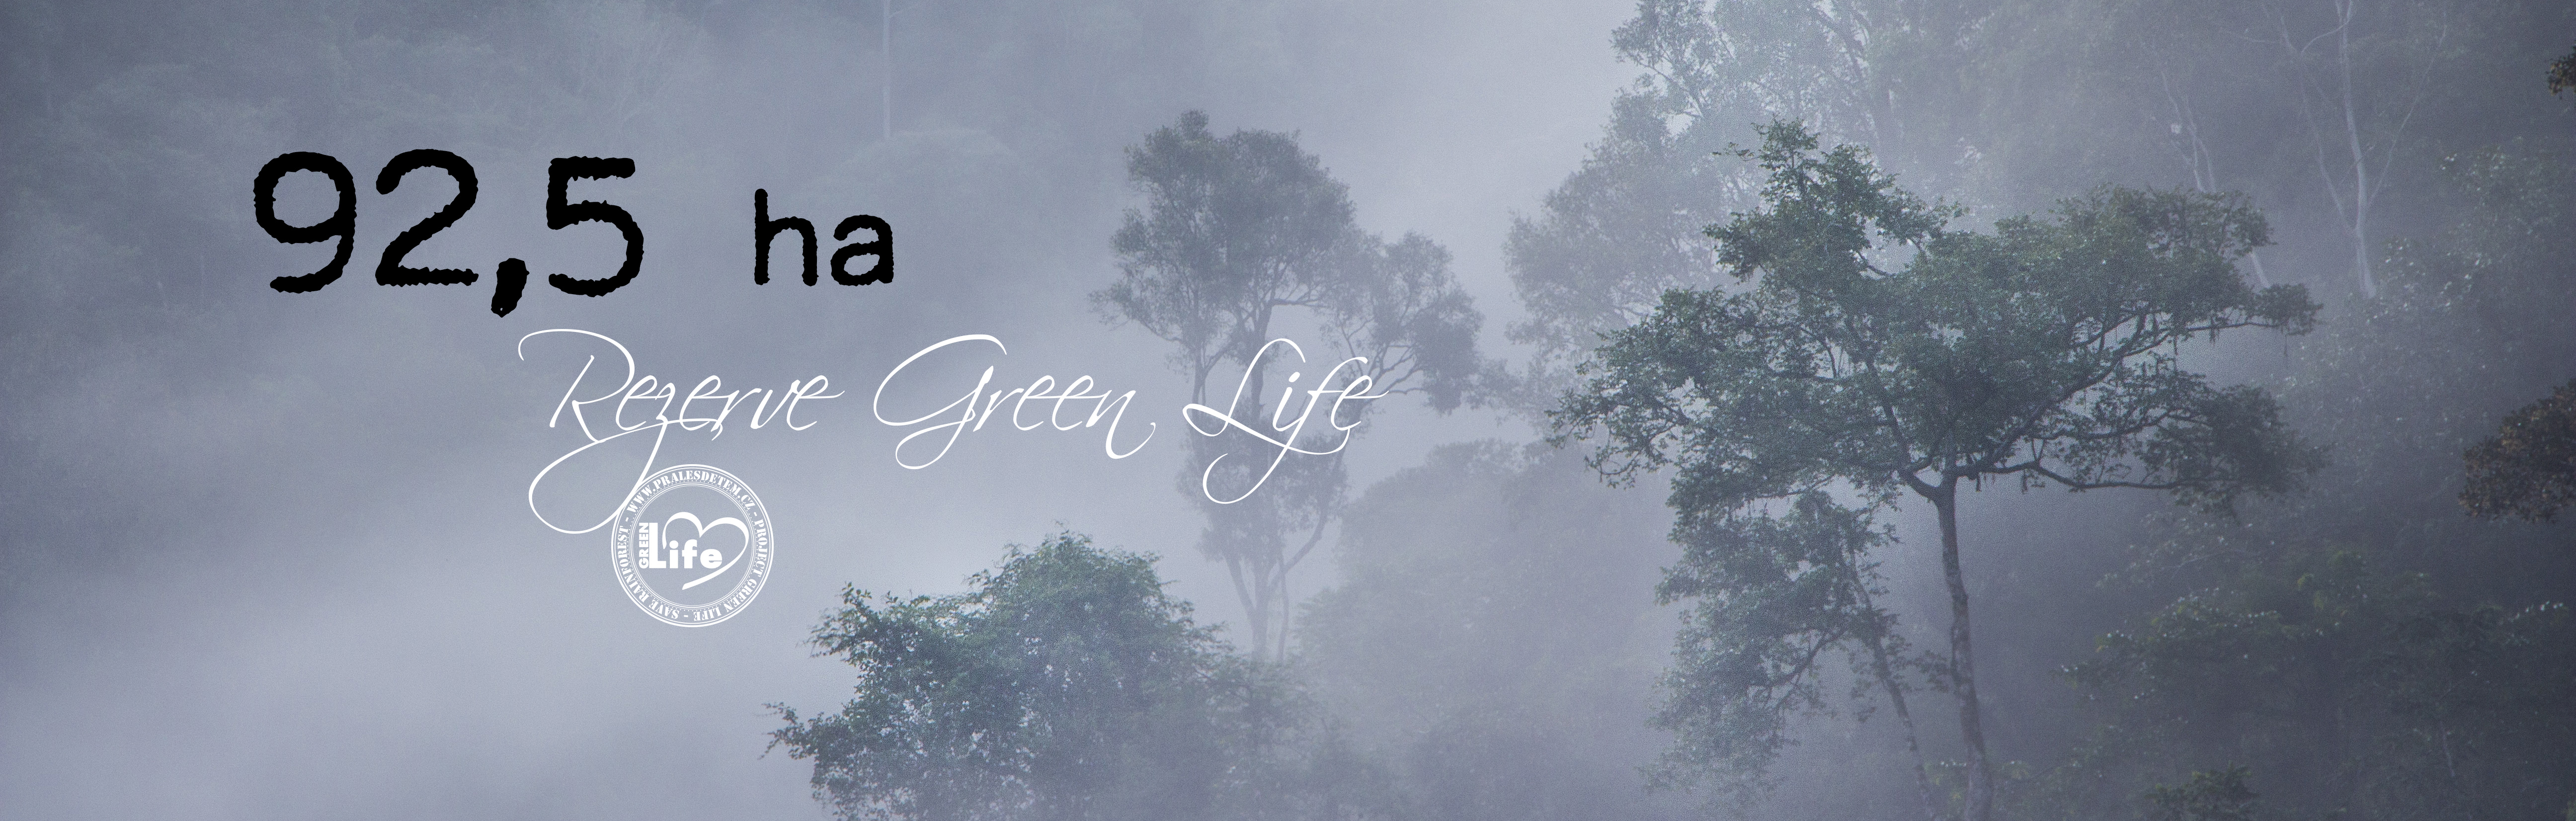 greenlifeproject_org-5